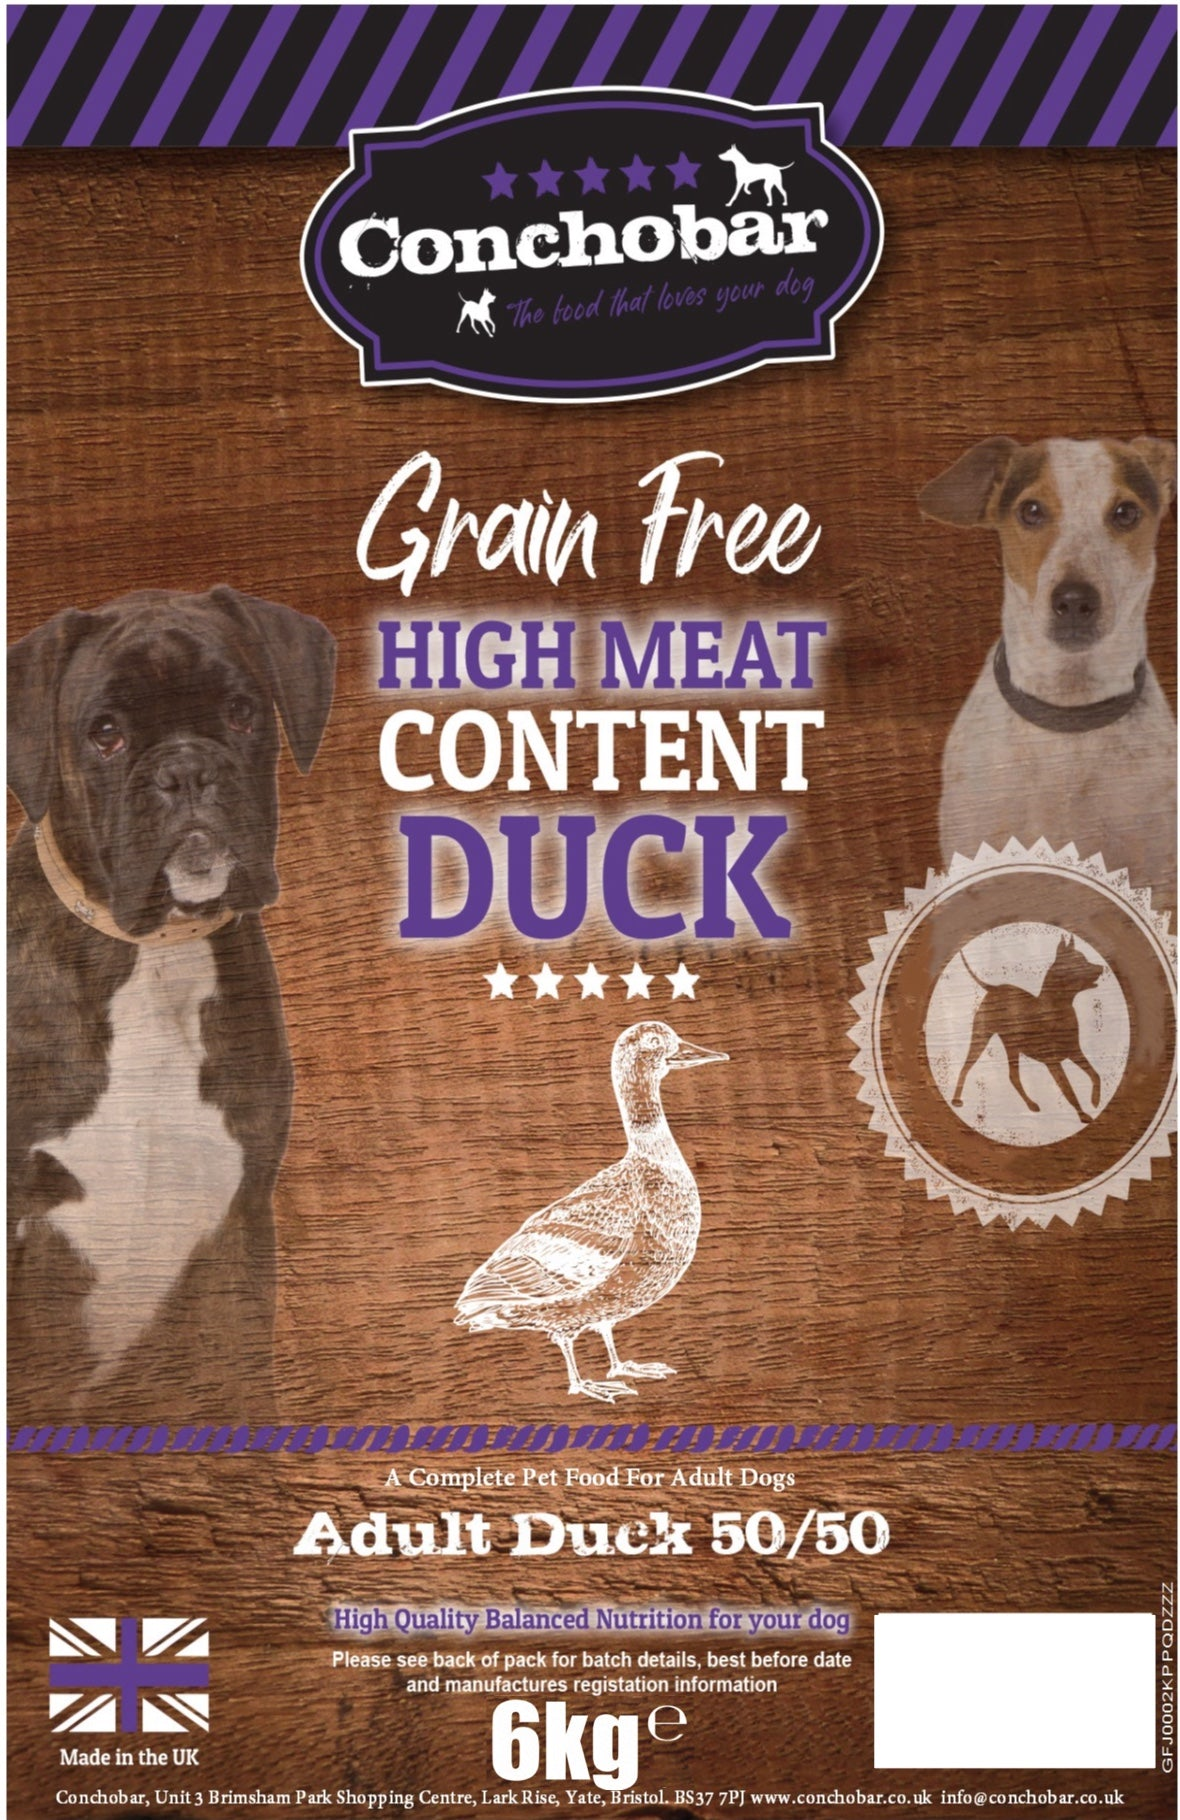 Conchobar Adult Duck 50/50 6kg - Conchobar, Adult Dog - Hypoallergic grain free dog food